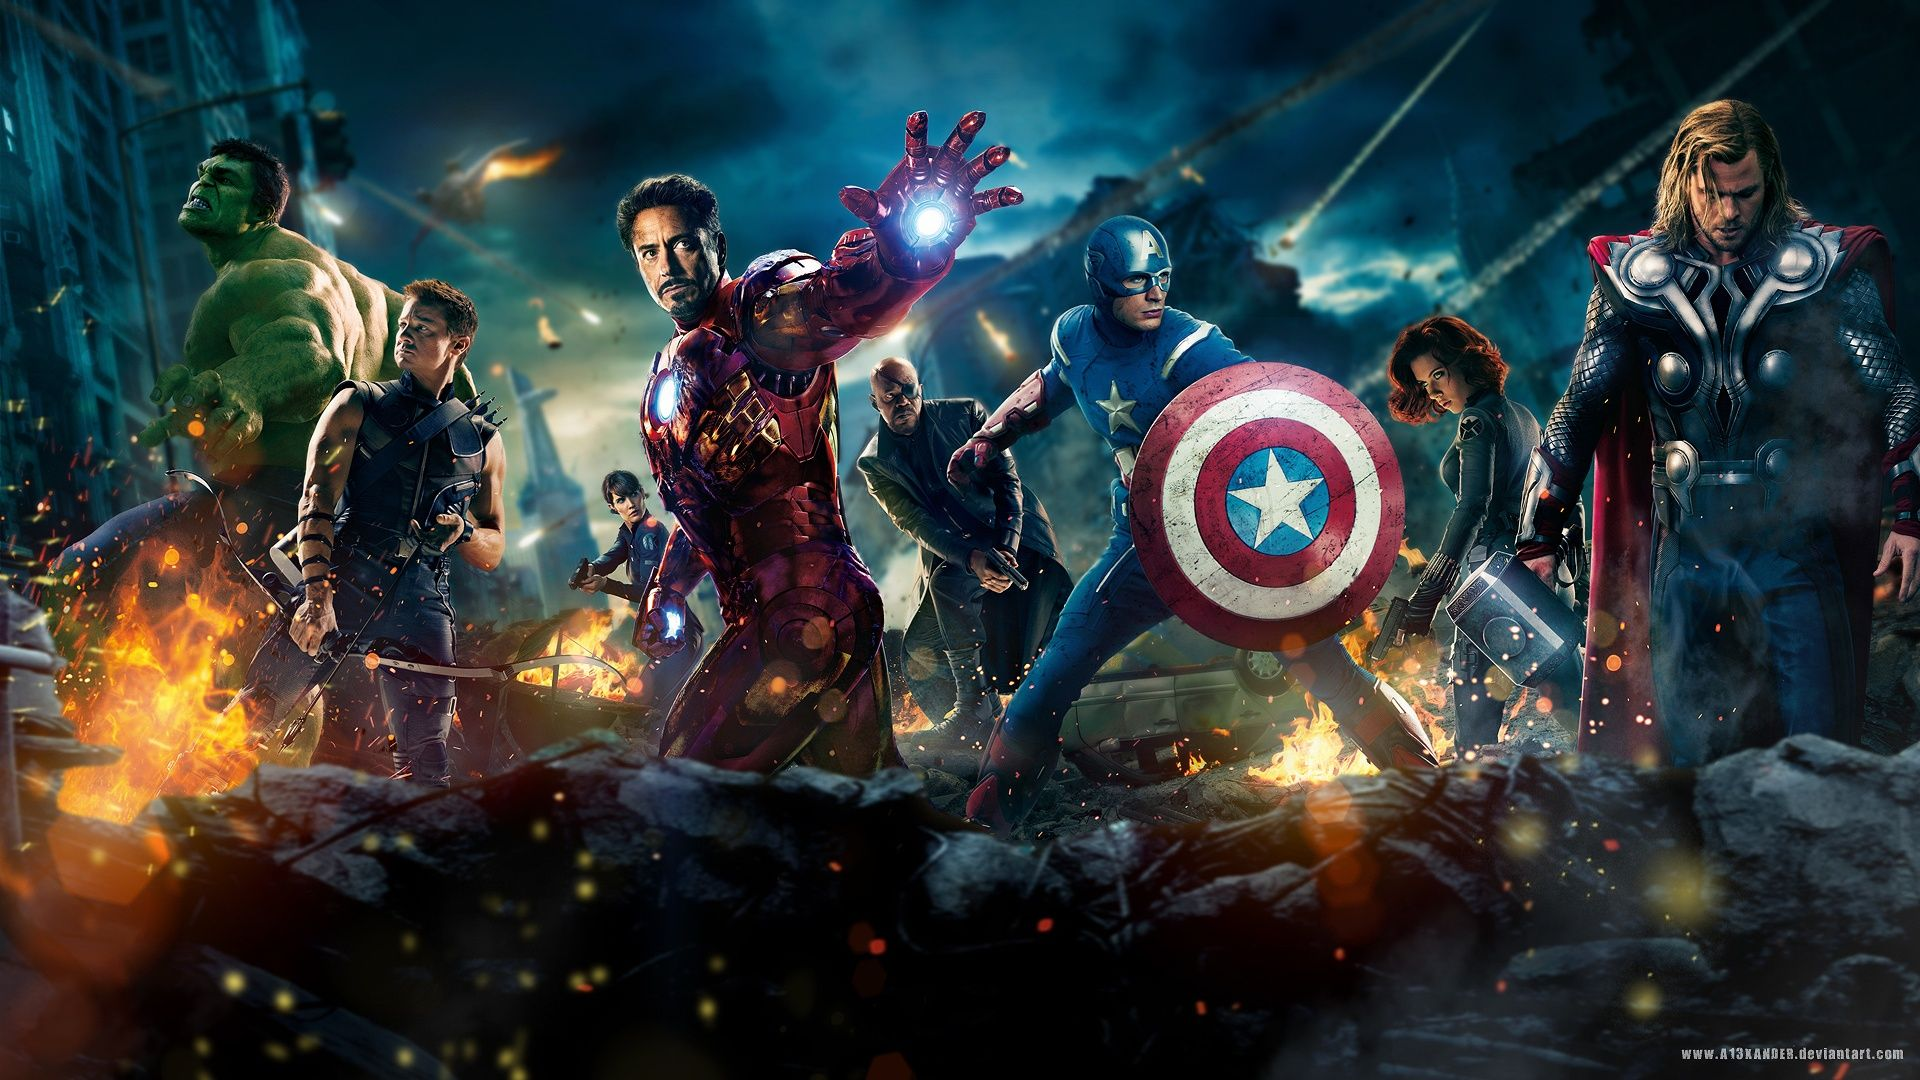 Great Movie Avengers Poster Avengers Wallpaper Avengers Movies